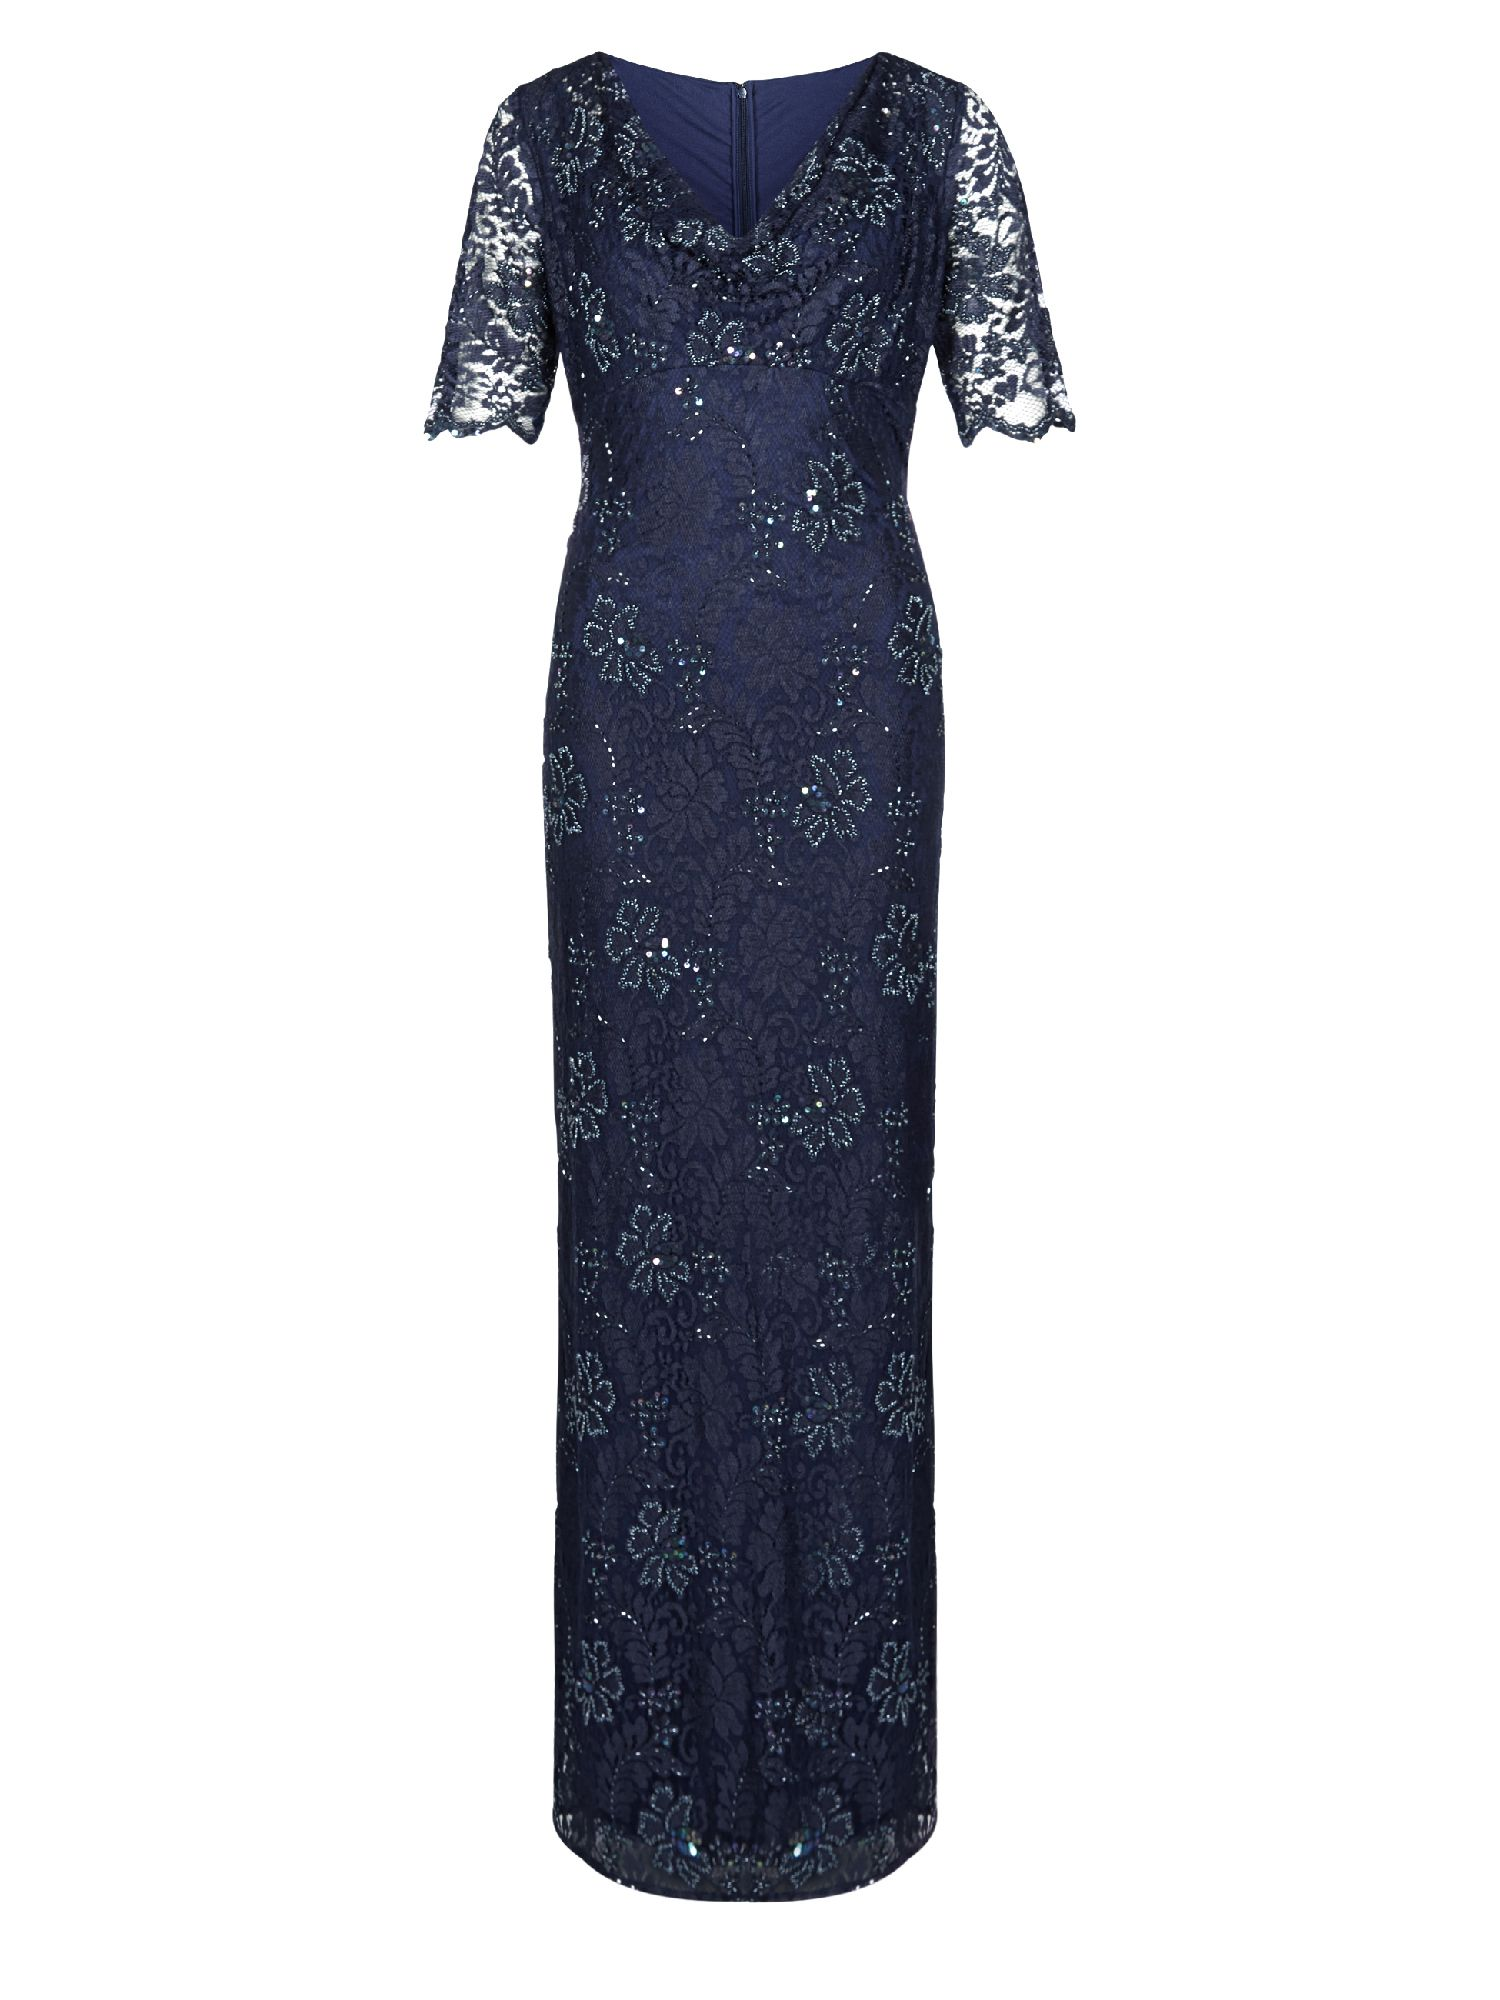 Jacques Vert Lace And Bead Cowl Maxi Dress $279.20 AT vintagedancer.com